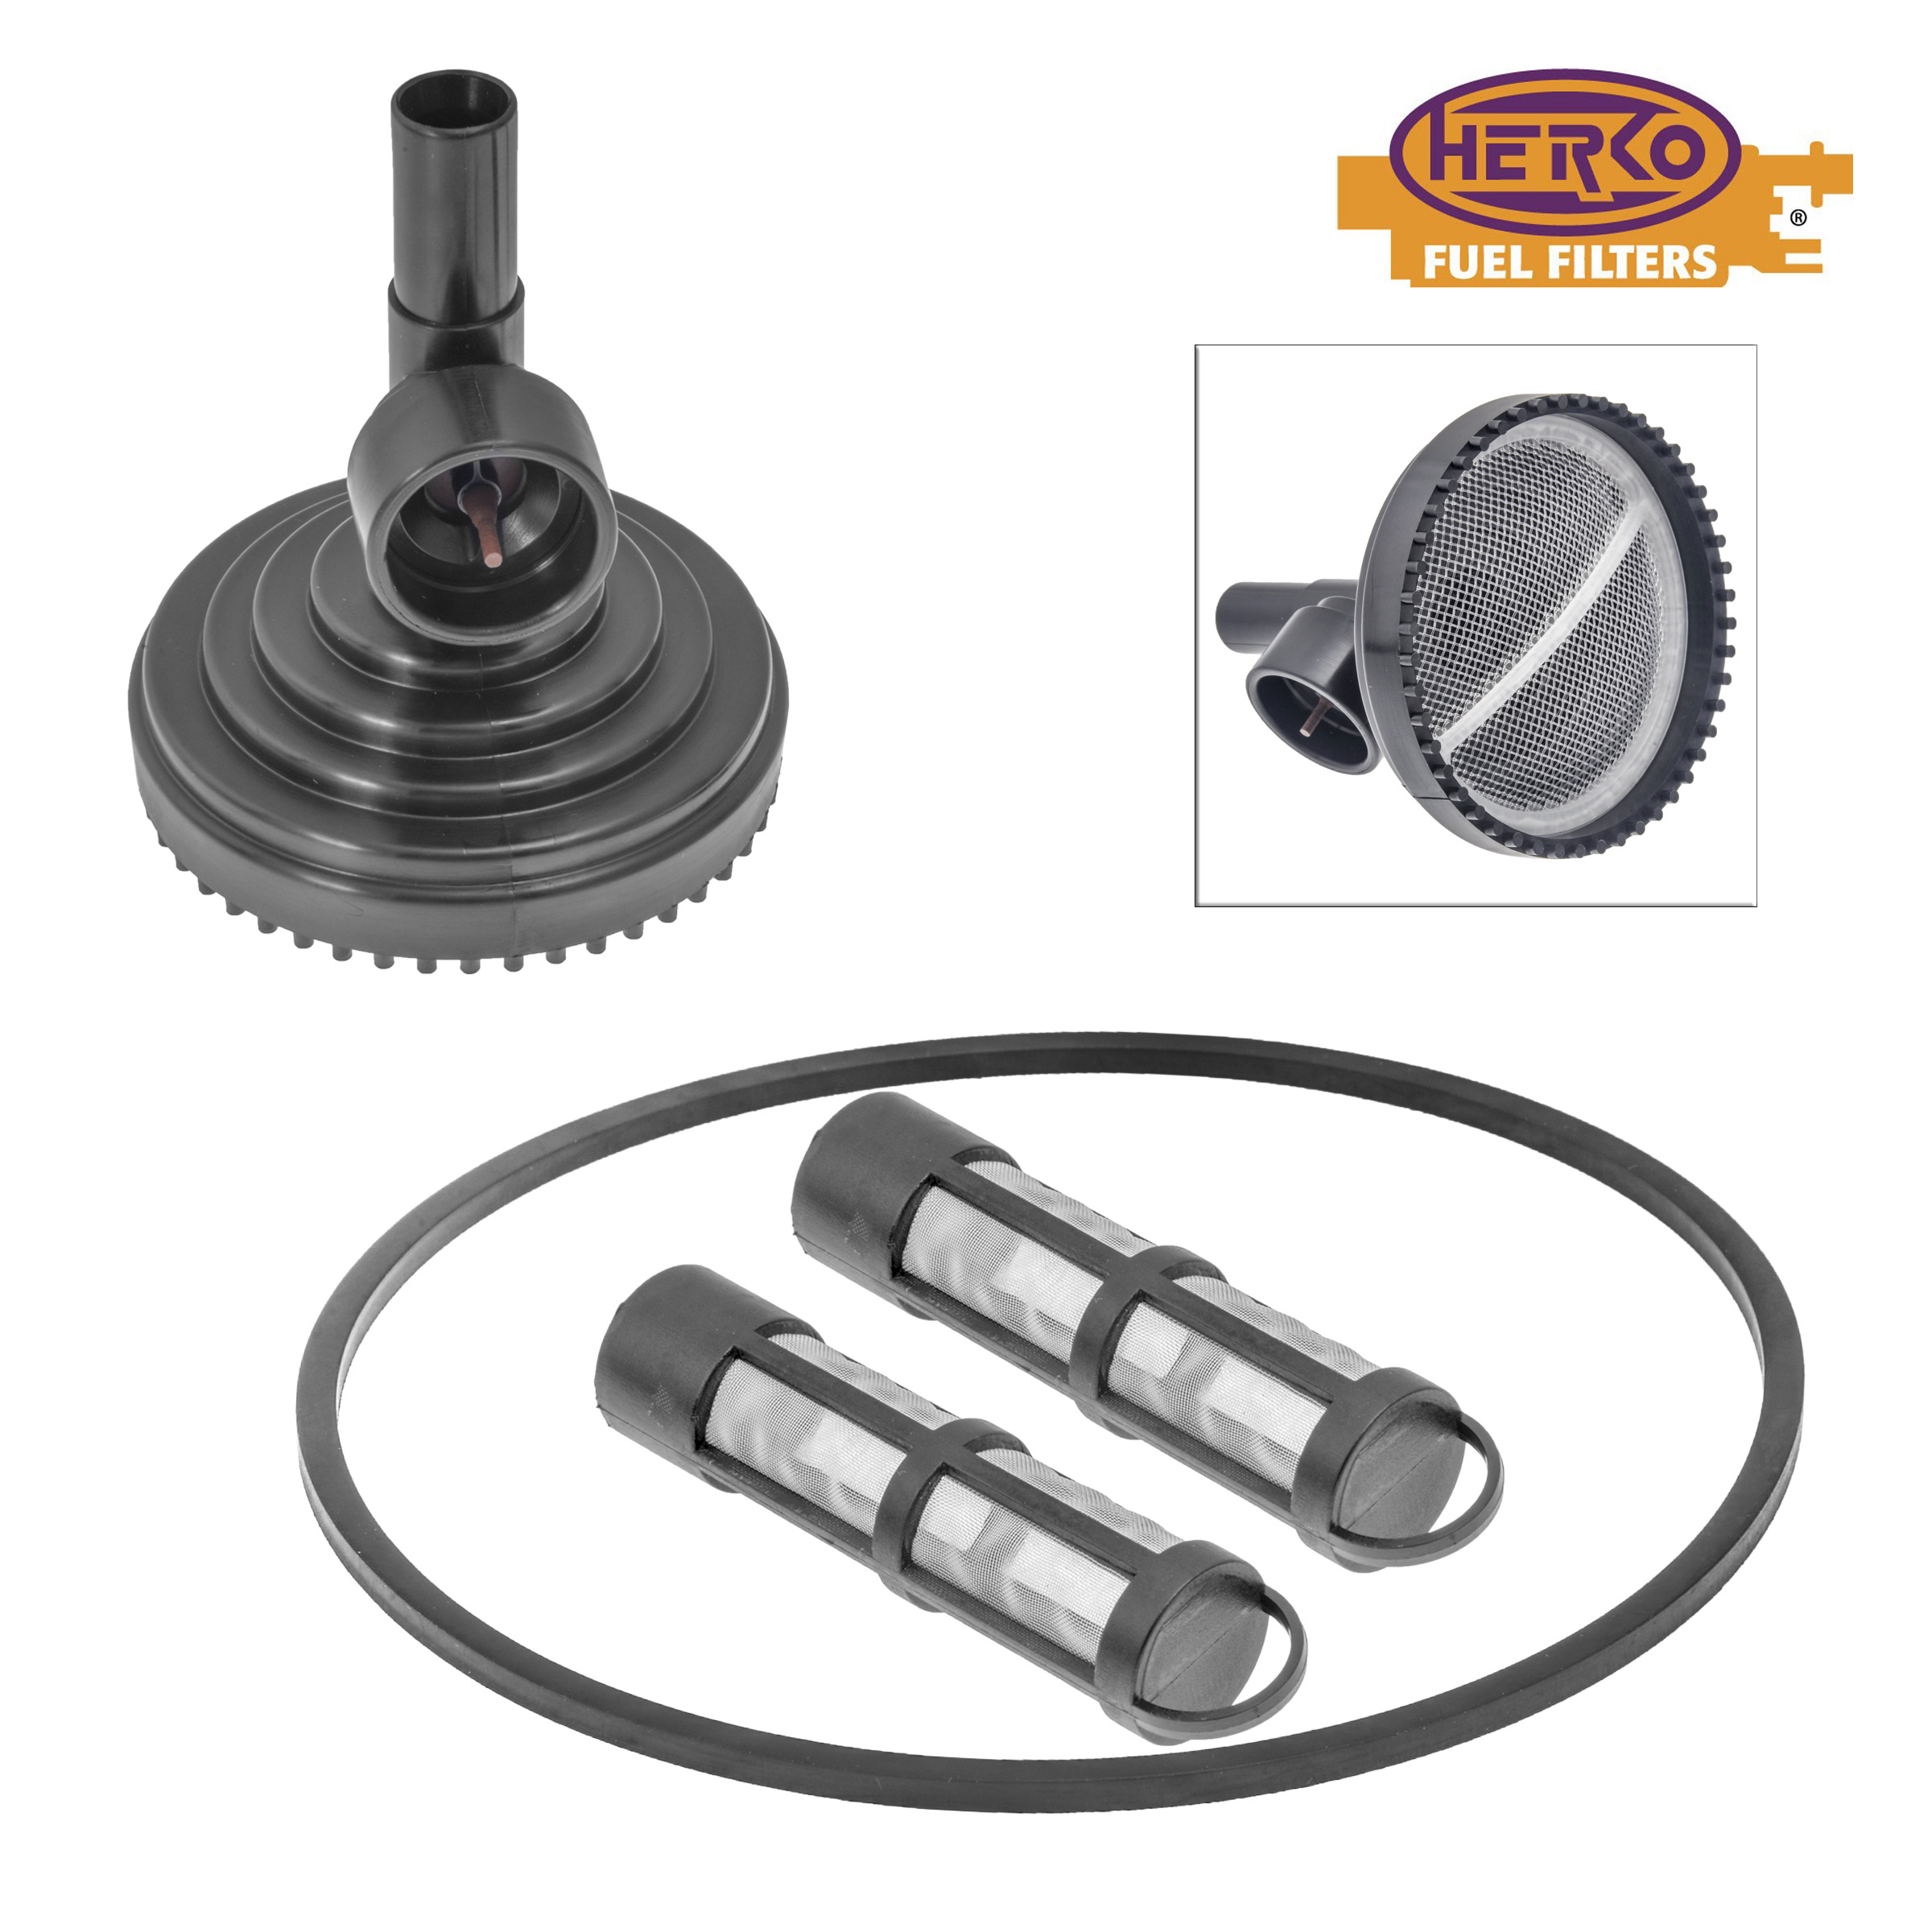 Herko Diesel Fuel Strainer Fs577 For Ford 60l 73l 1990 2008 Ebay Strainers And Filters Description